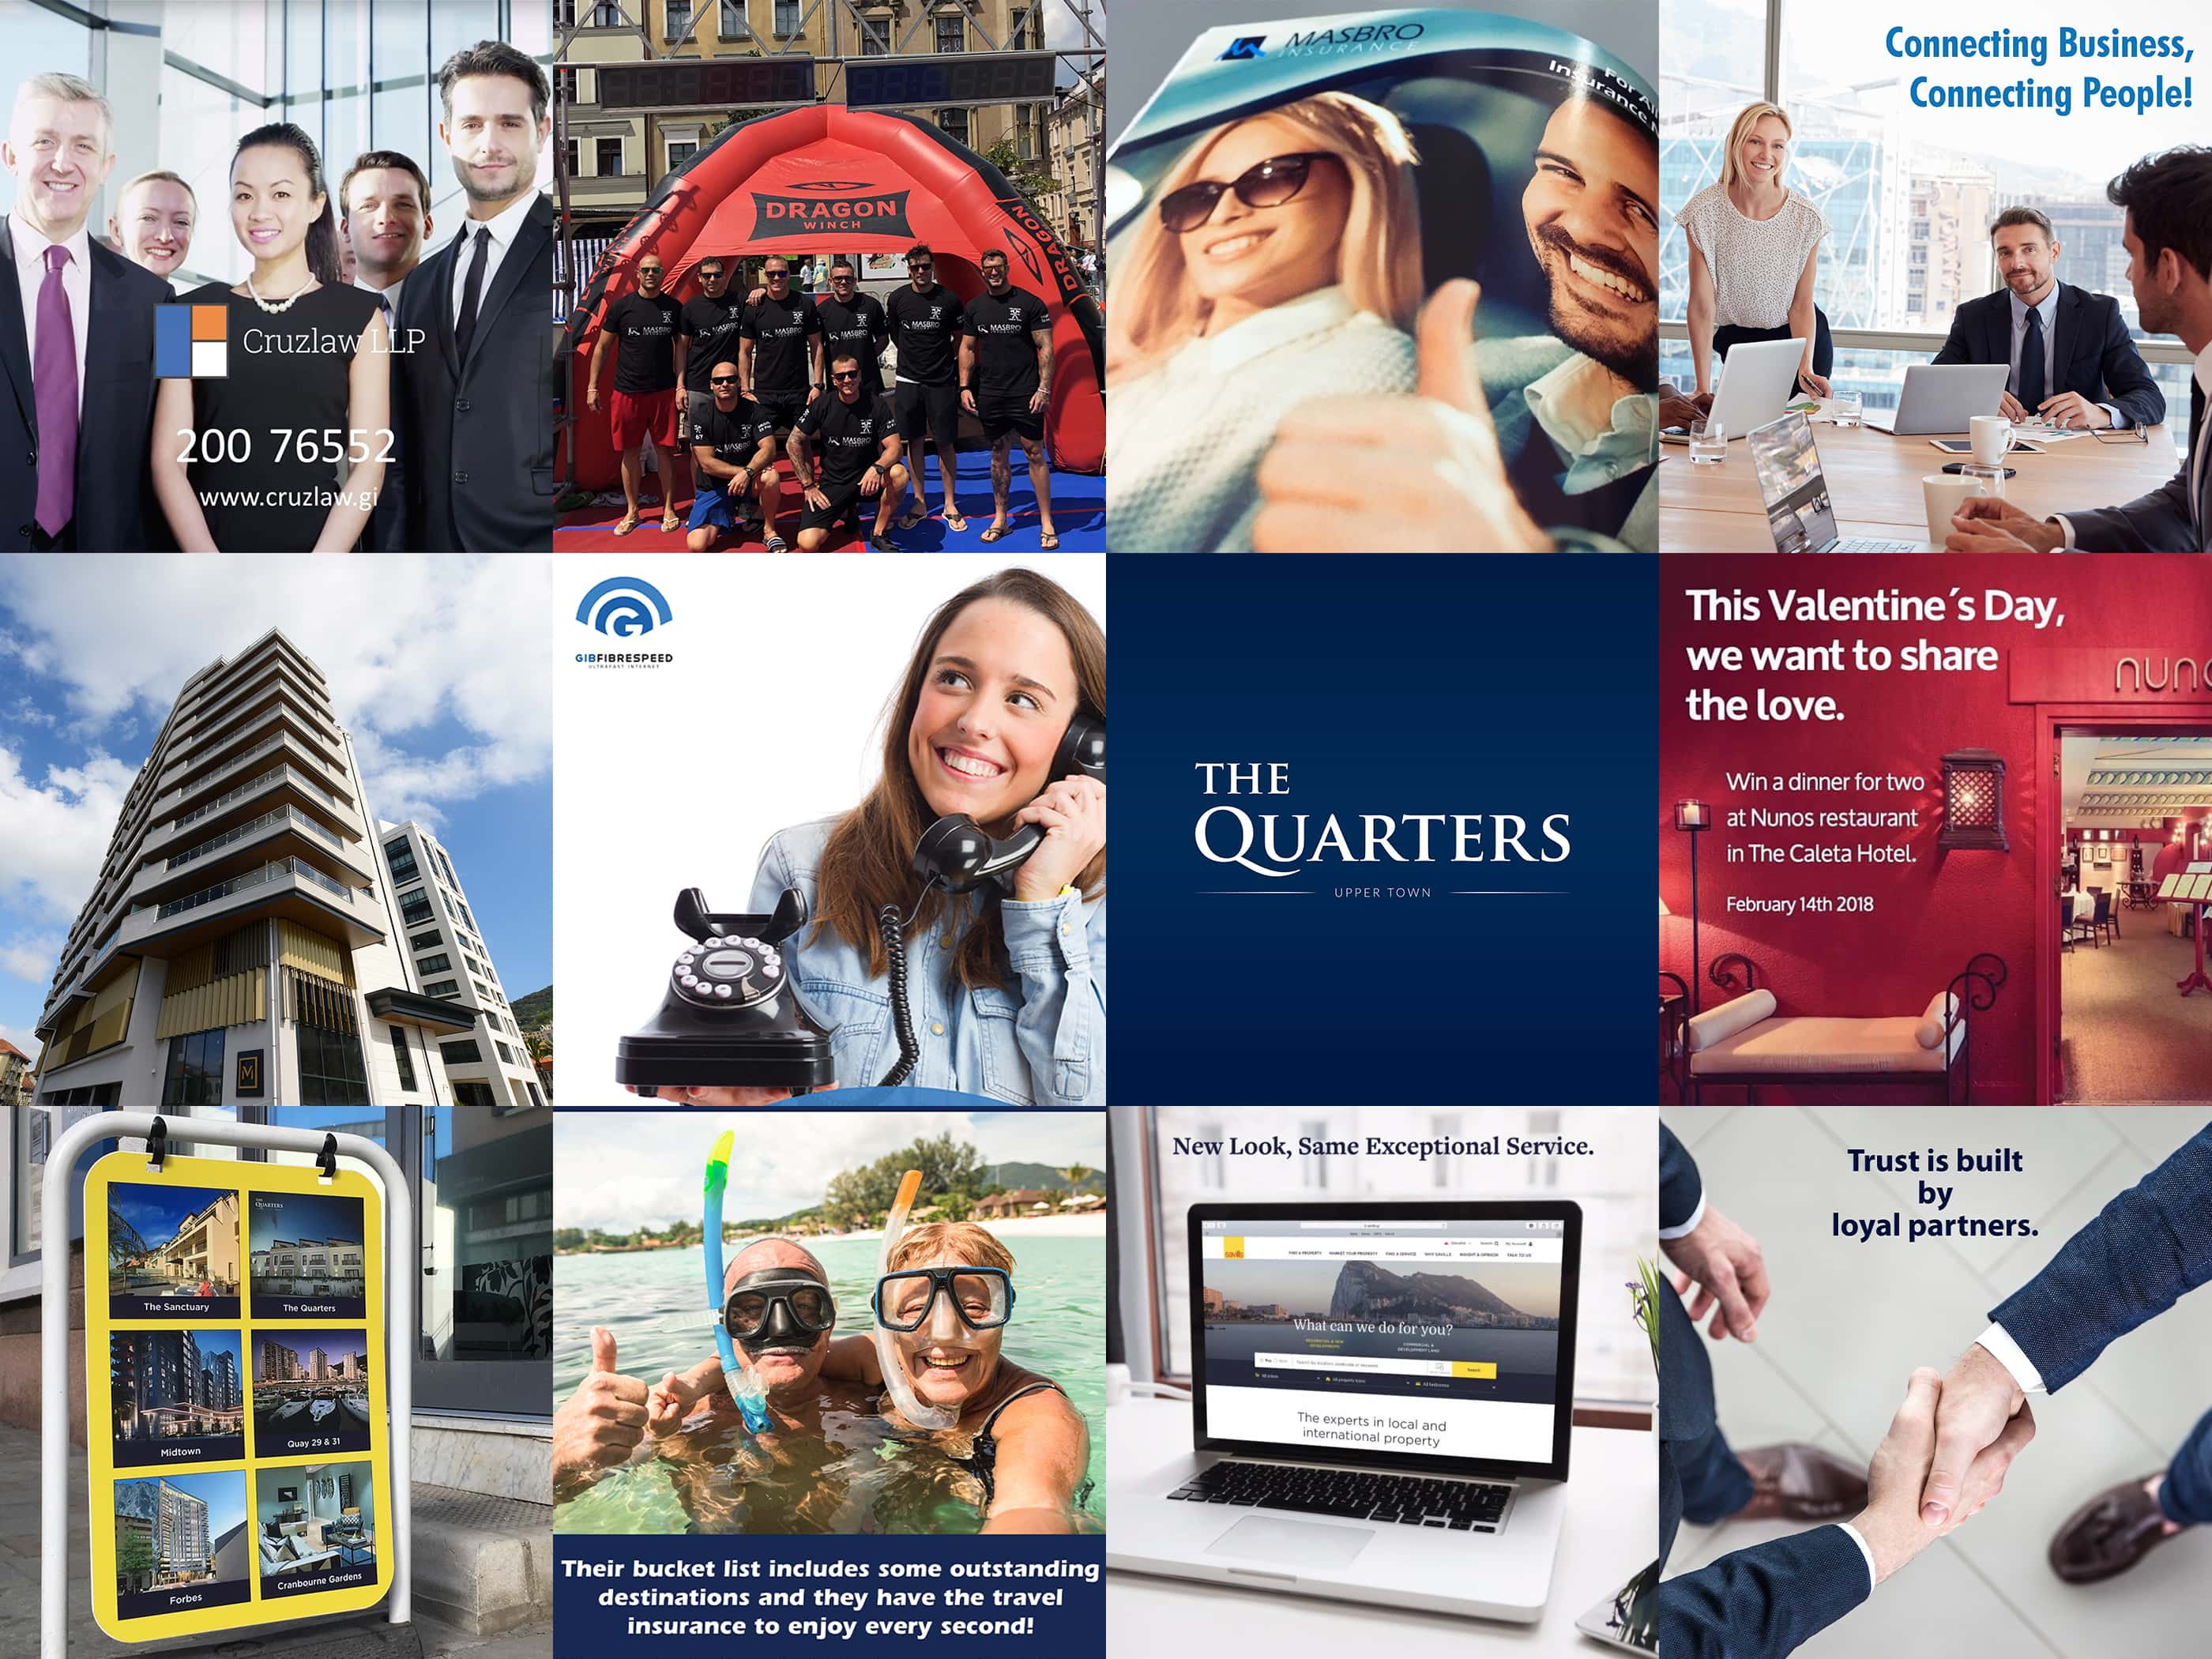 Image grid of work done by Altair Marketing & Design